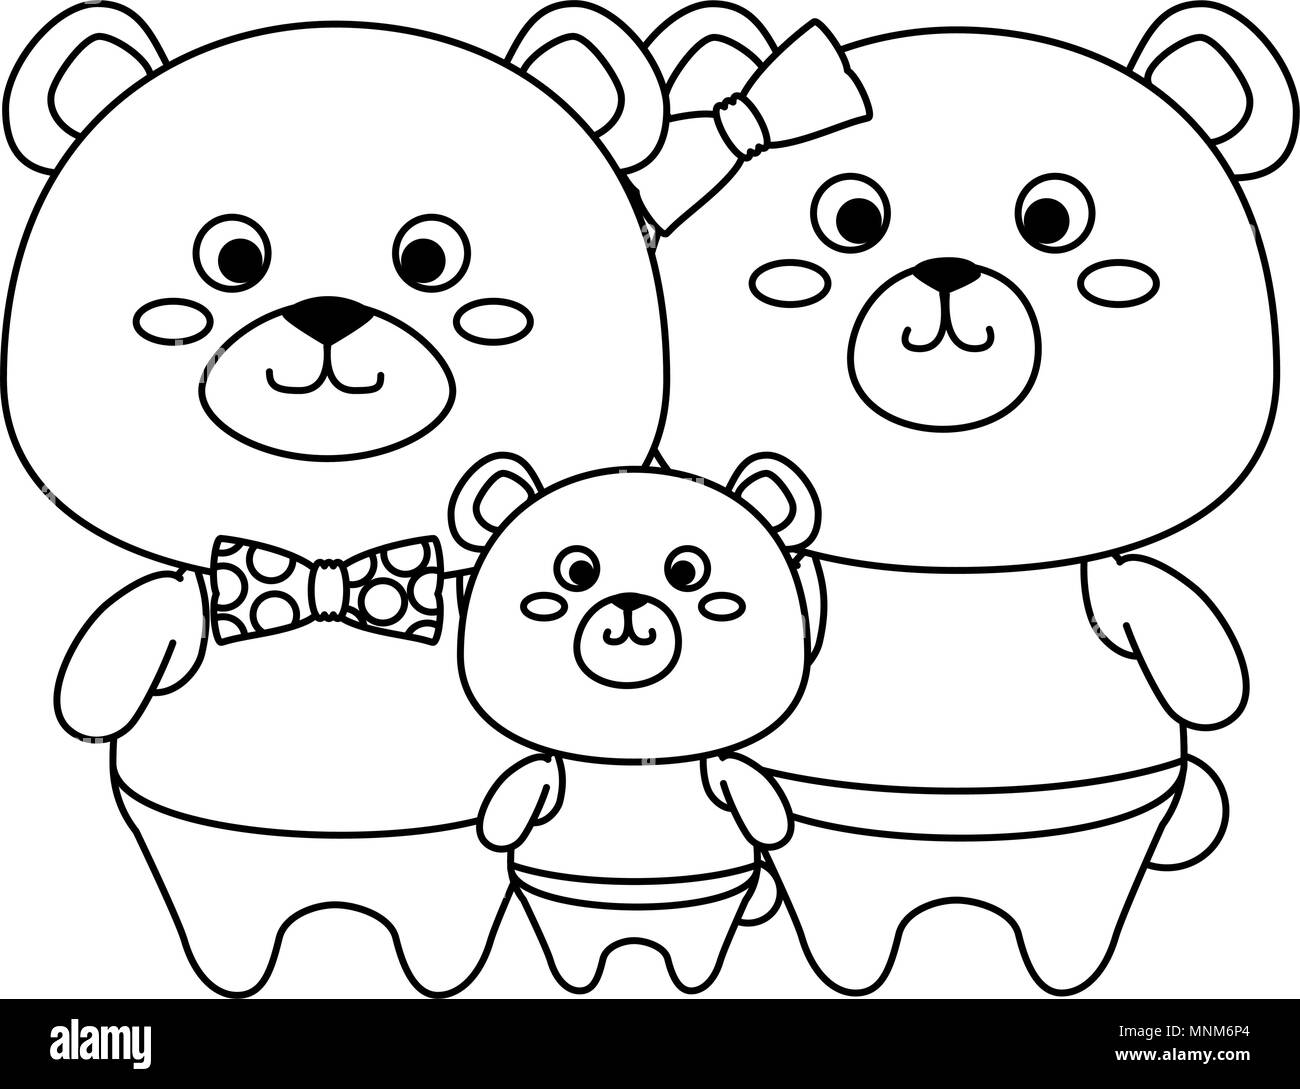 cute family bears teddy adorables characters - Stock Image